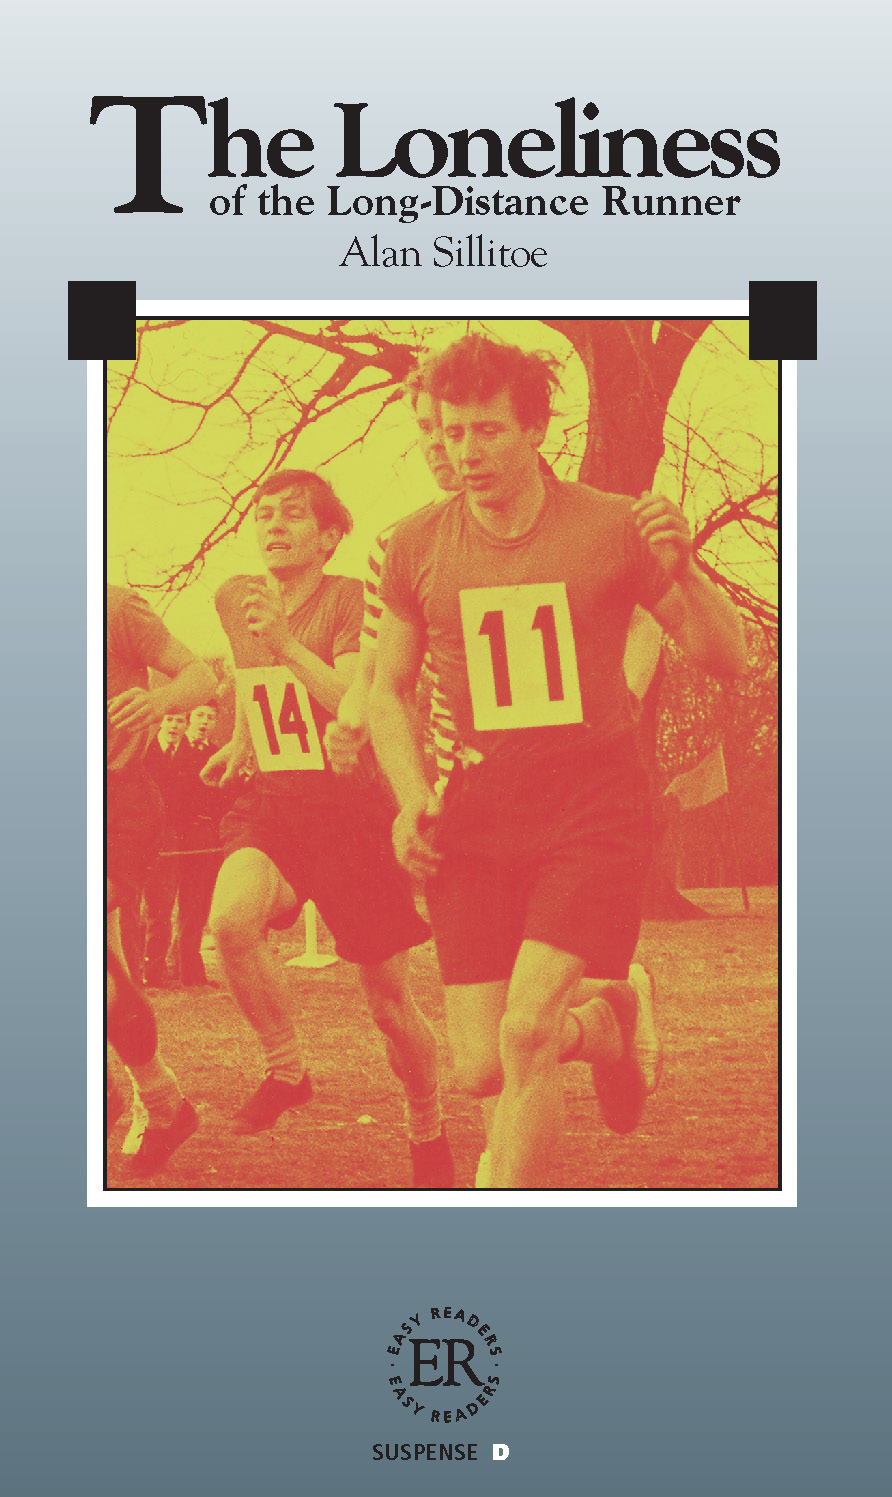 Loneliness of the long distance runner analysis essay